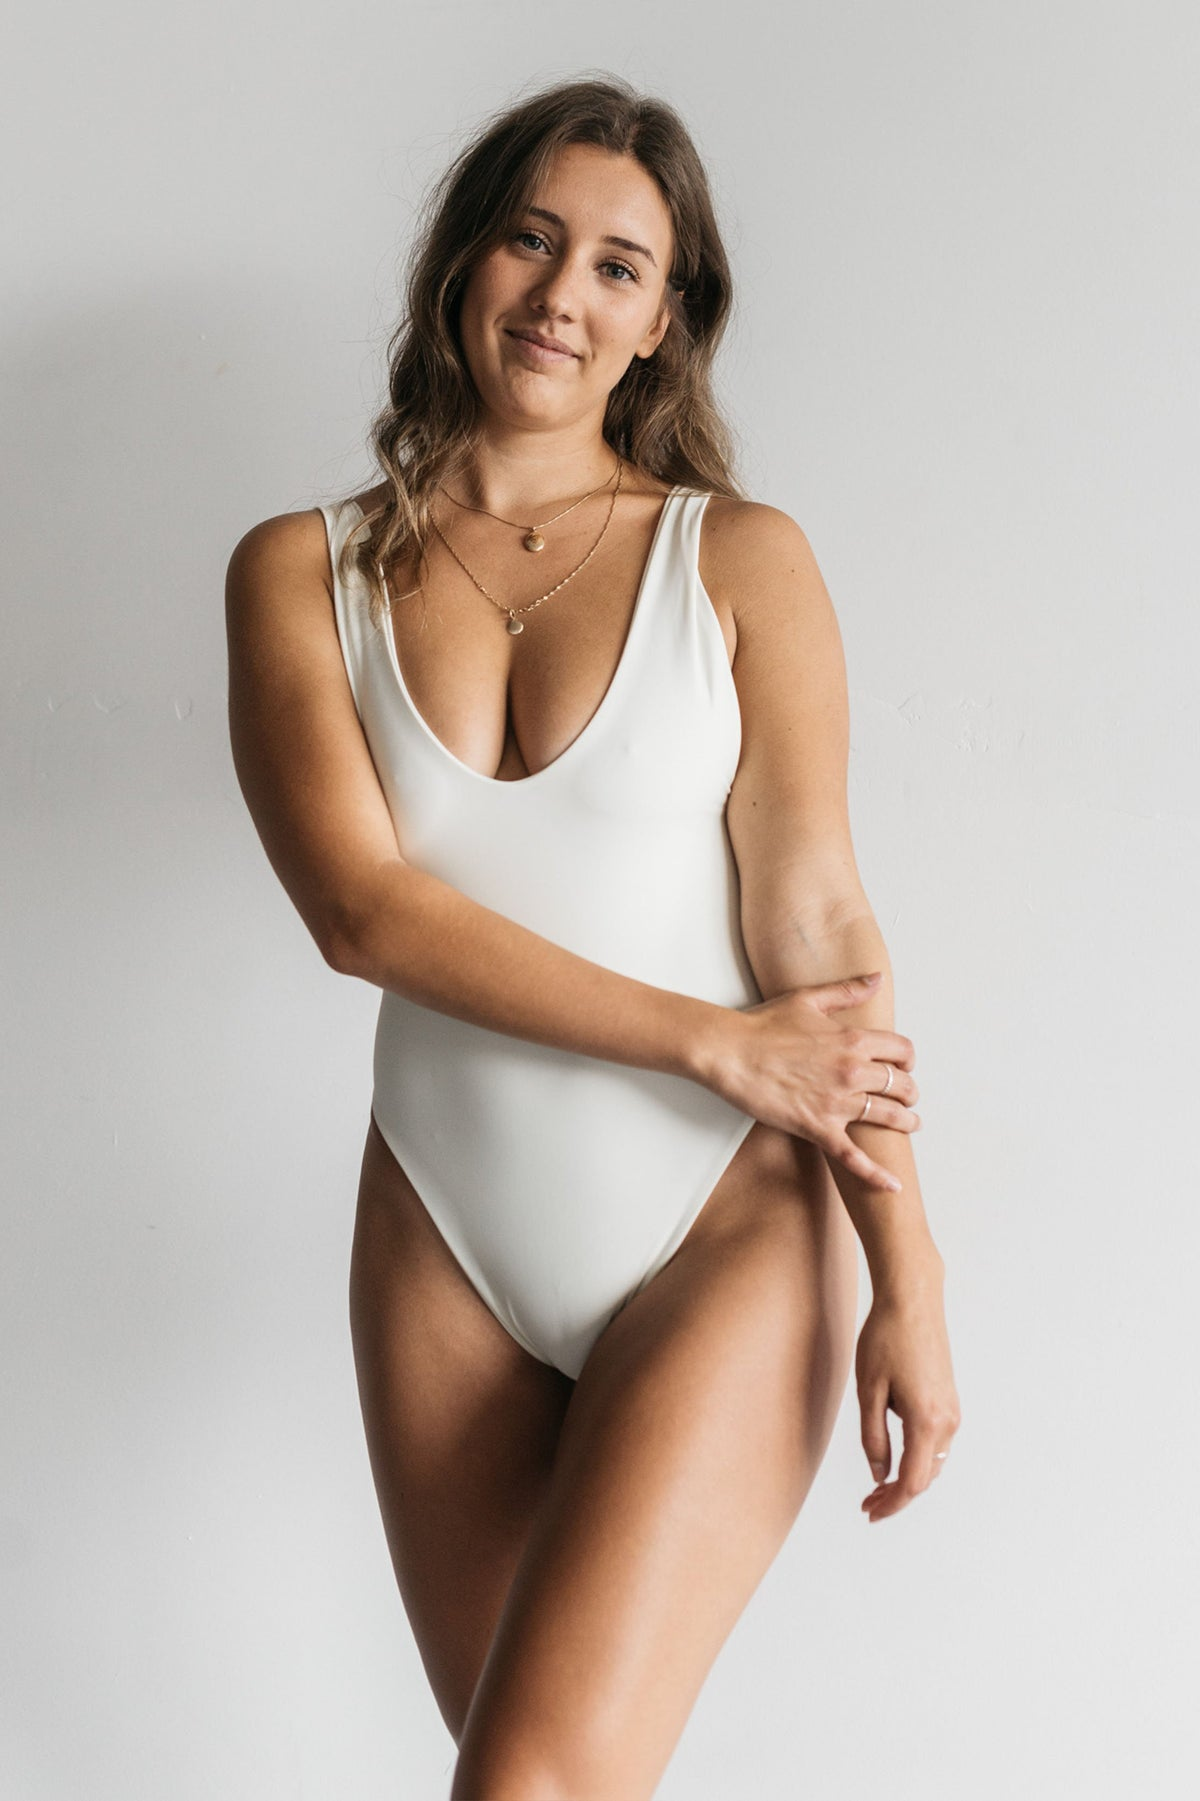 A woman standing with one arm crossed in front of her body wearing a white one piece swimsuit with a deep v neckline and minimal coverage.